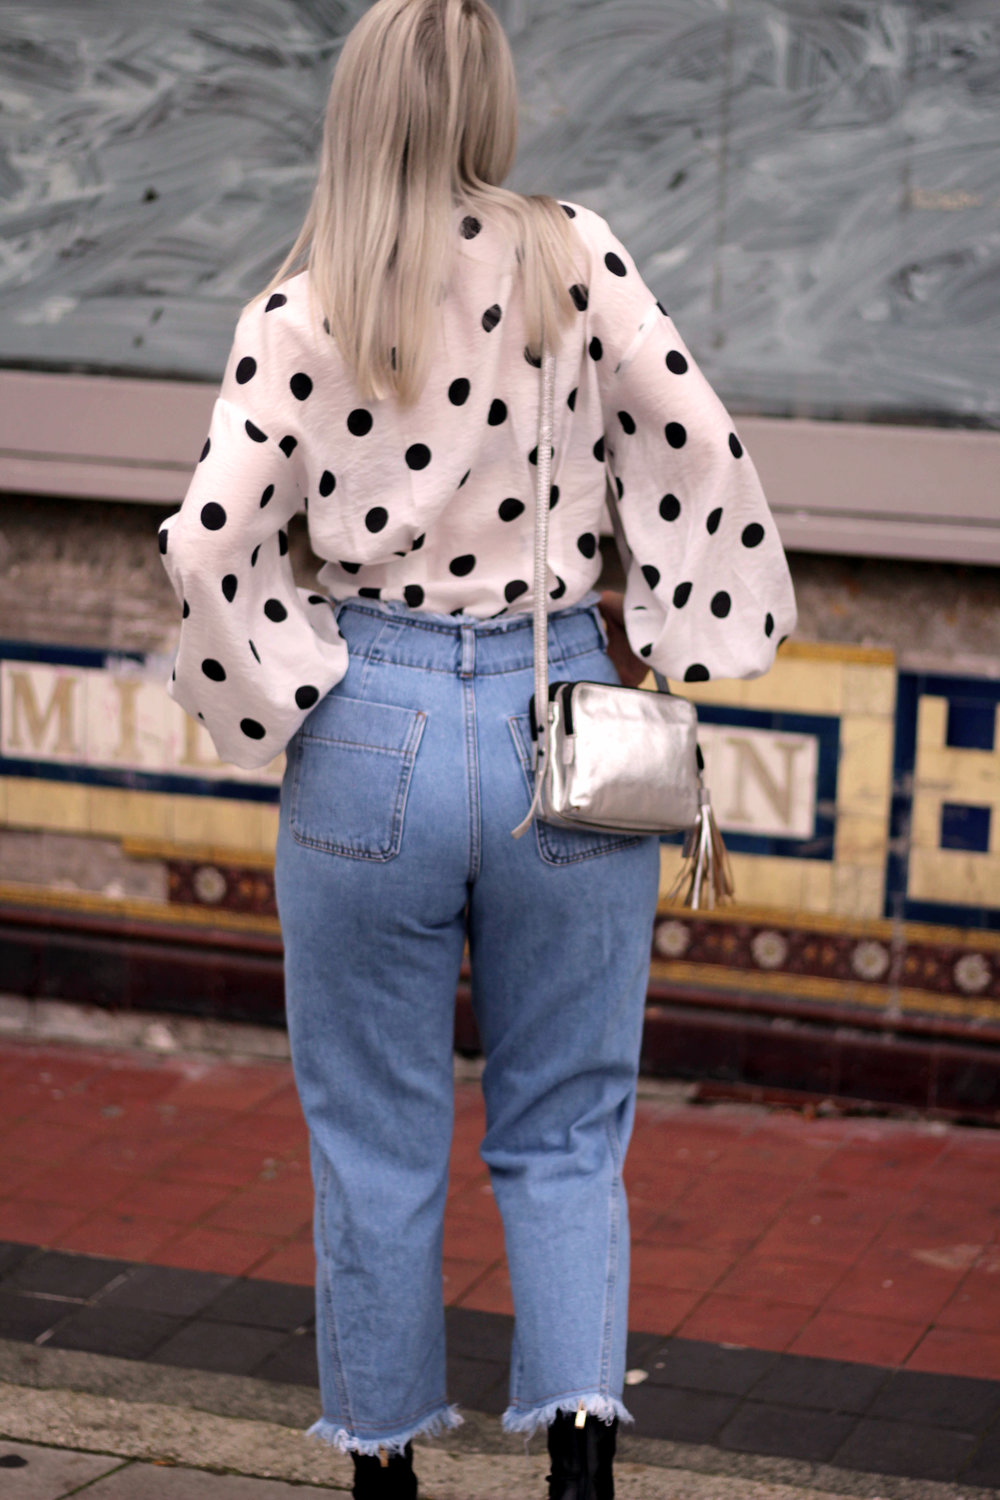 PUSSY BOW POLKA DOT BLOUSE, WIDE LEG FRAYED TOPSHOP JEANS, BLACK ANKLE BOOTS, NORTHERN MAGPIE, JOEY TAYLOR 7